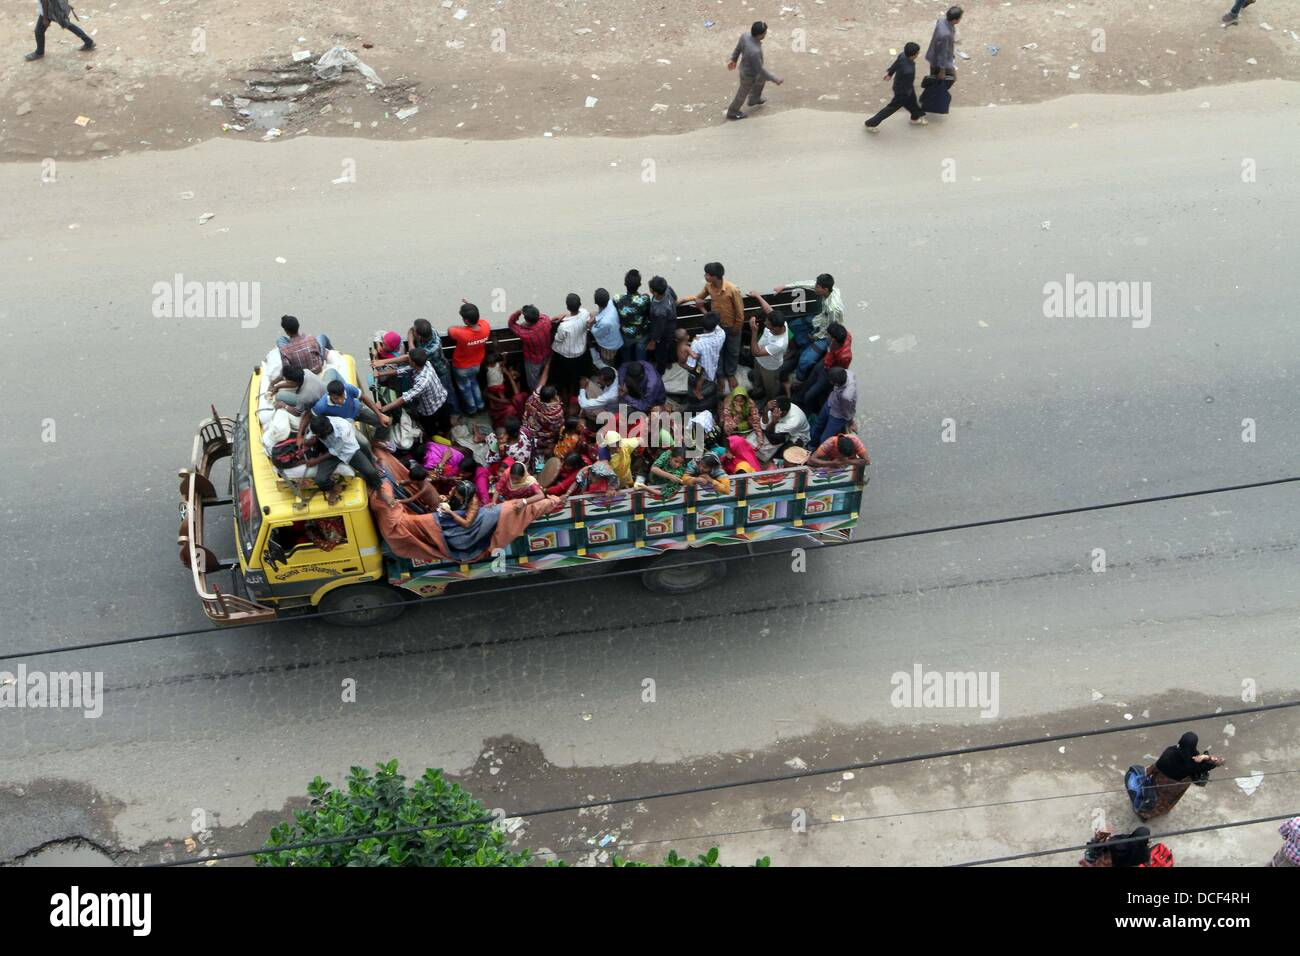 BANGLADESH, Dhaka: City dwellers back in the capital stand on the crowded truck after Eid vacation  in Dhaka-Tangail - Stock Image